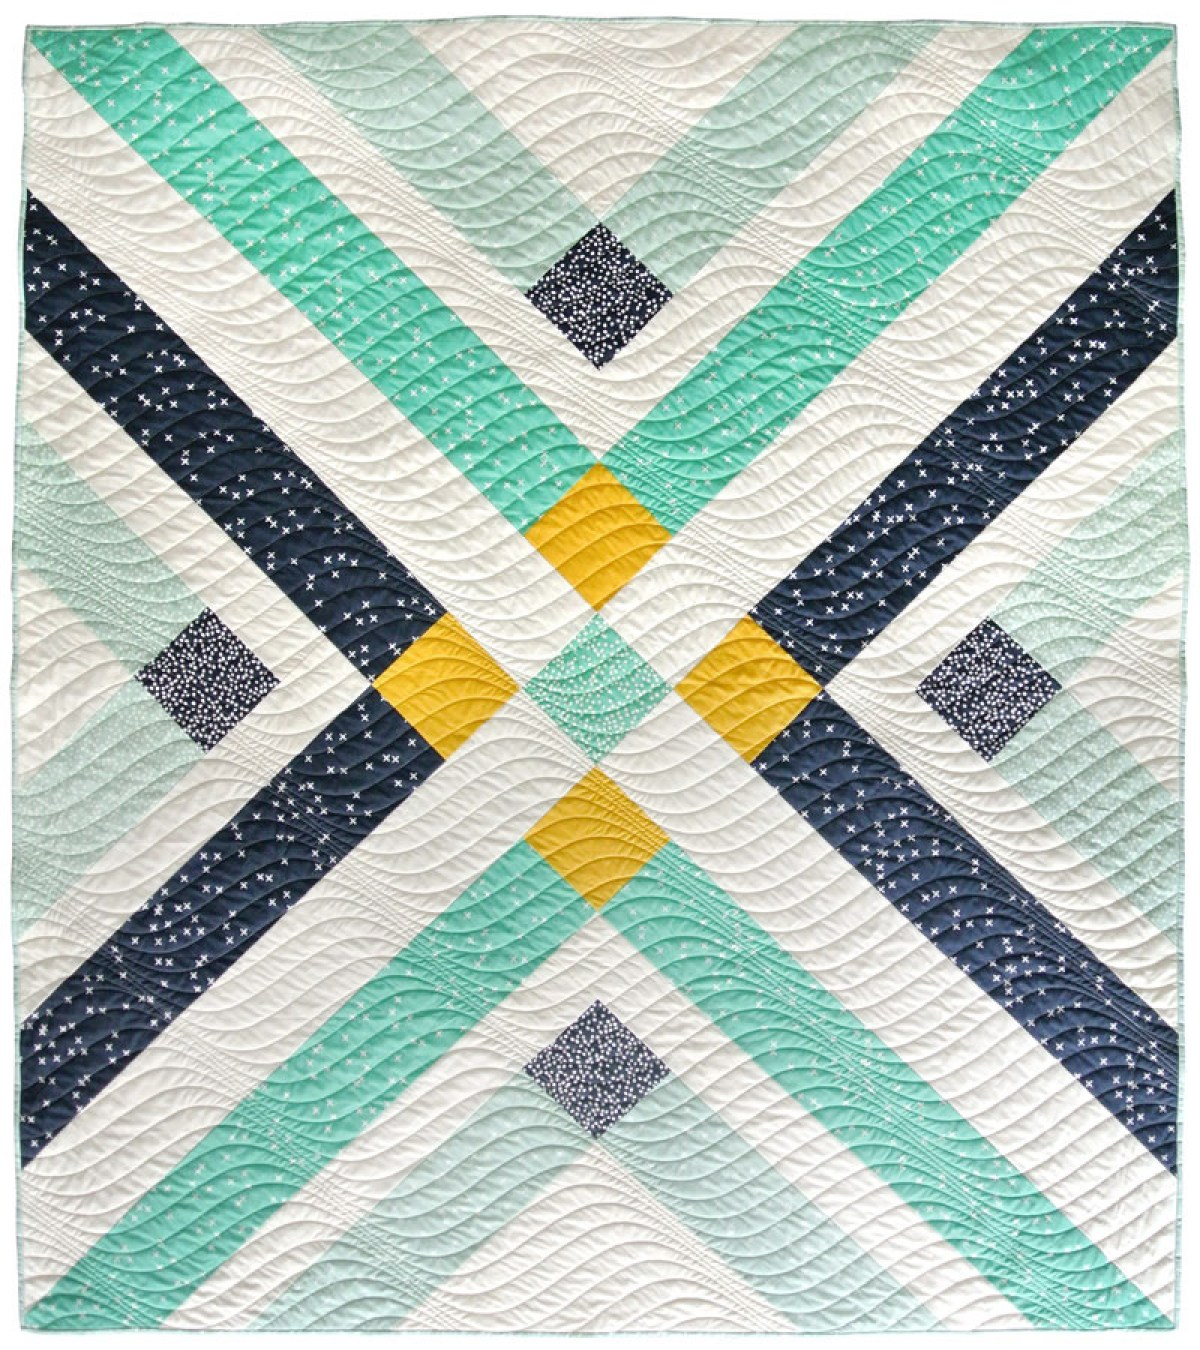 10 Free Modern Quilt Patterns For Beginners! - Retro Plaid Free Quilt Pattern - from Suzy Quilts